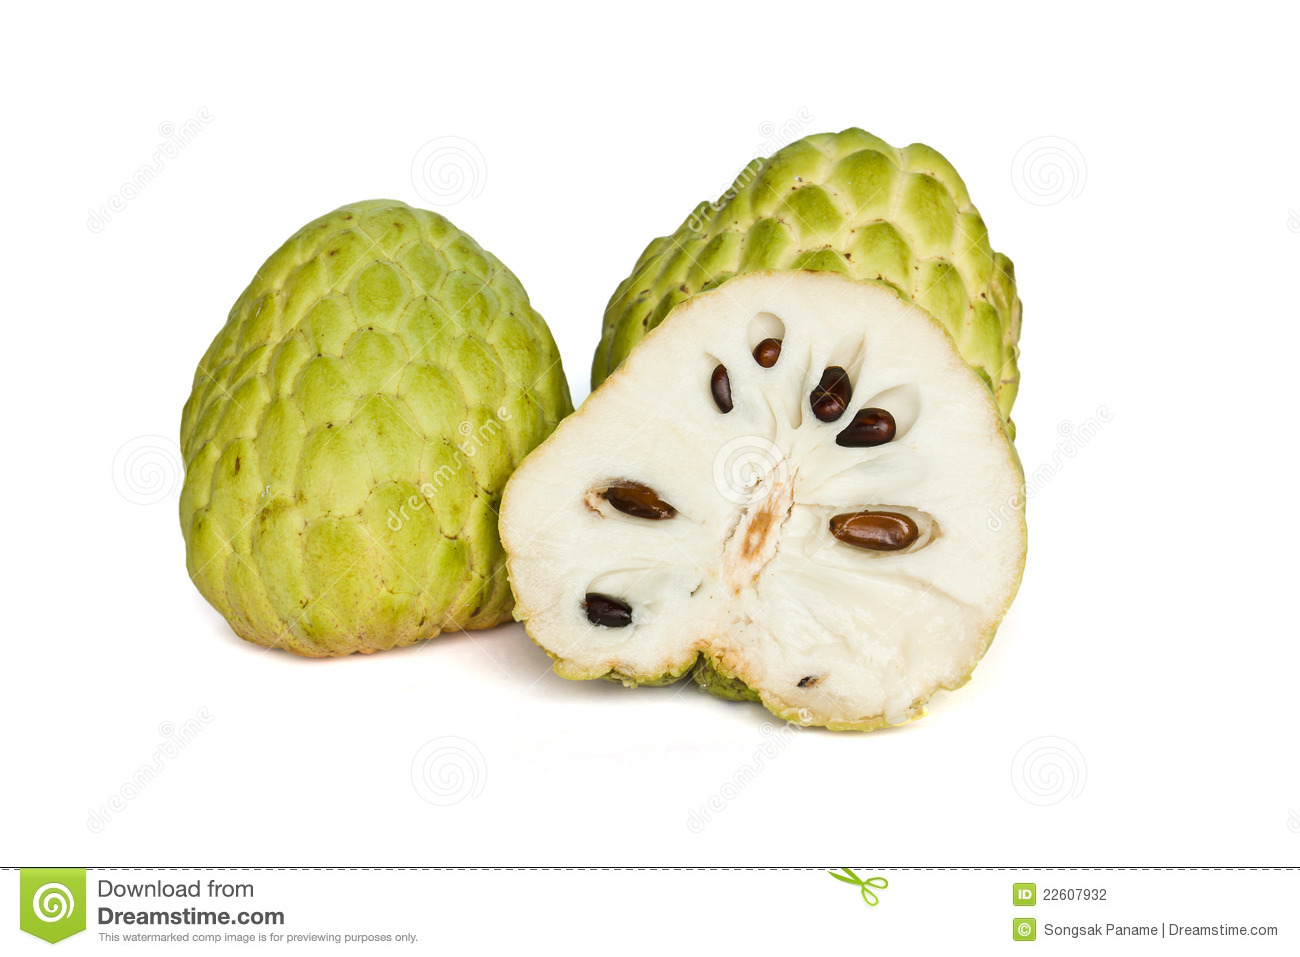 pics for  gt  custard apple clipart helping others clip art free helping others clipart black and white